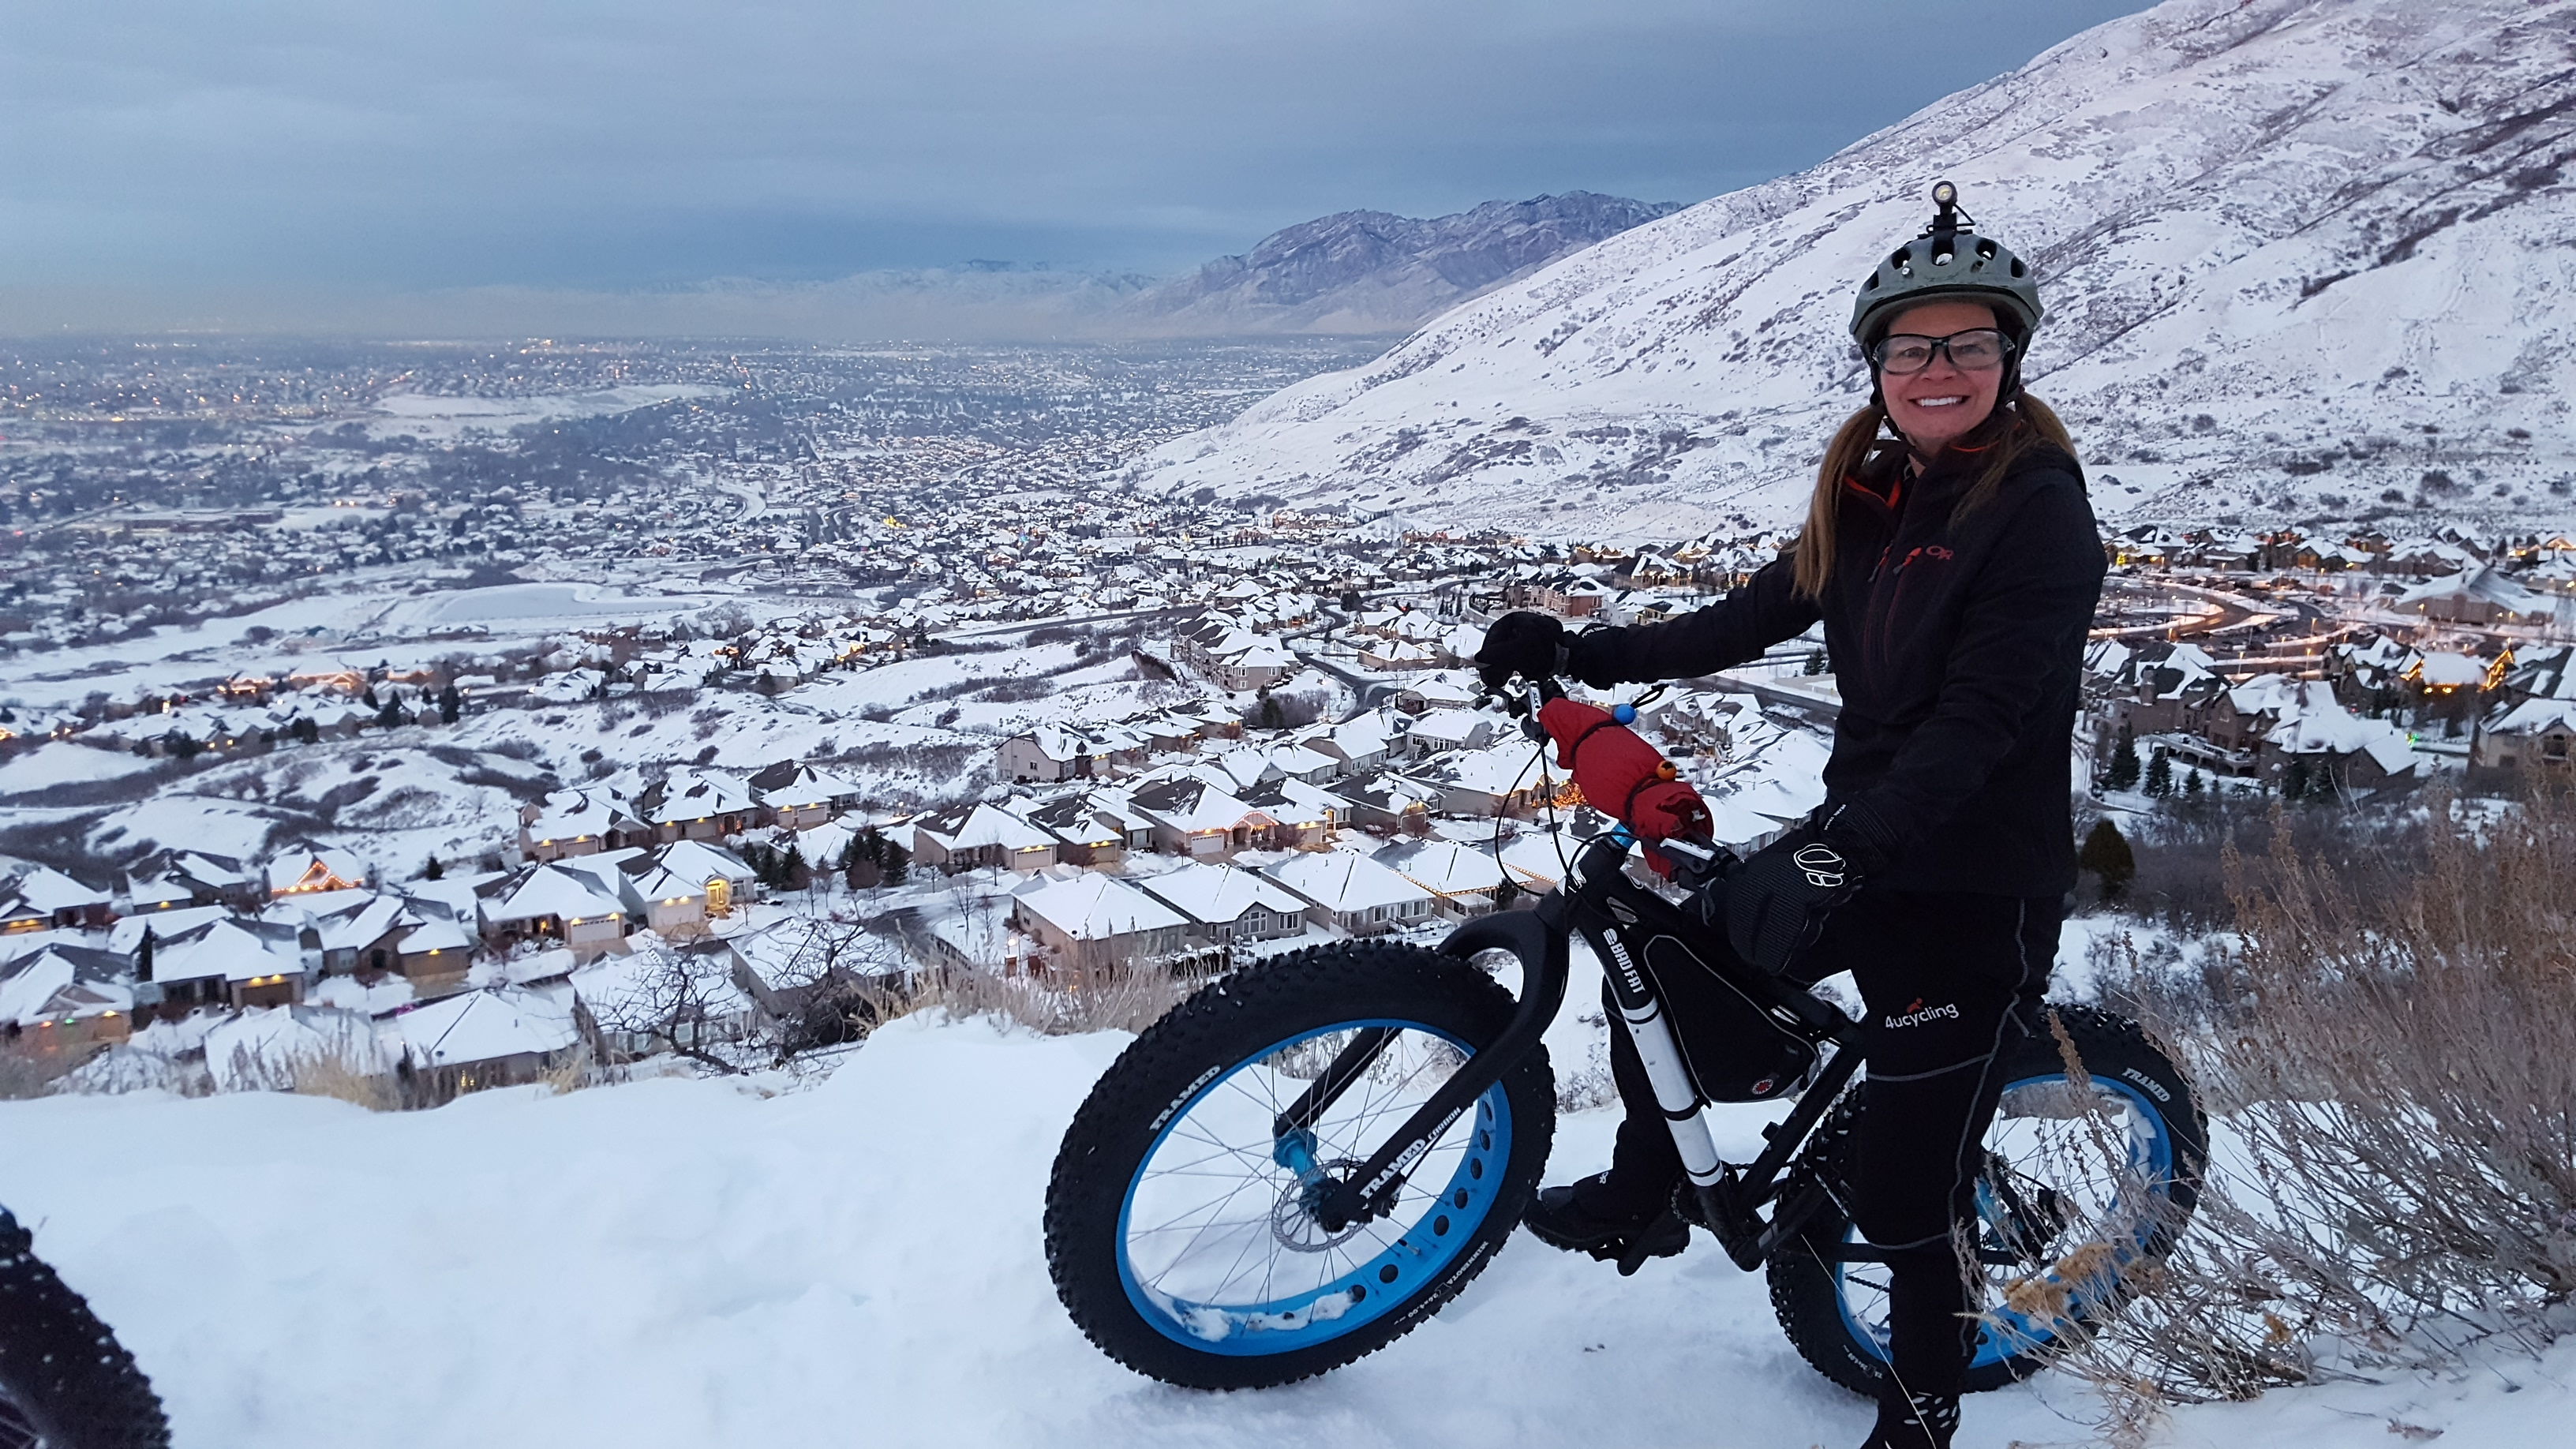 fat biking in the snow with bungie ball ties